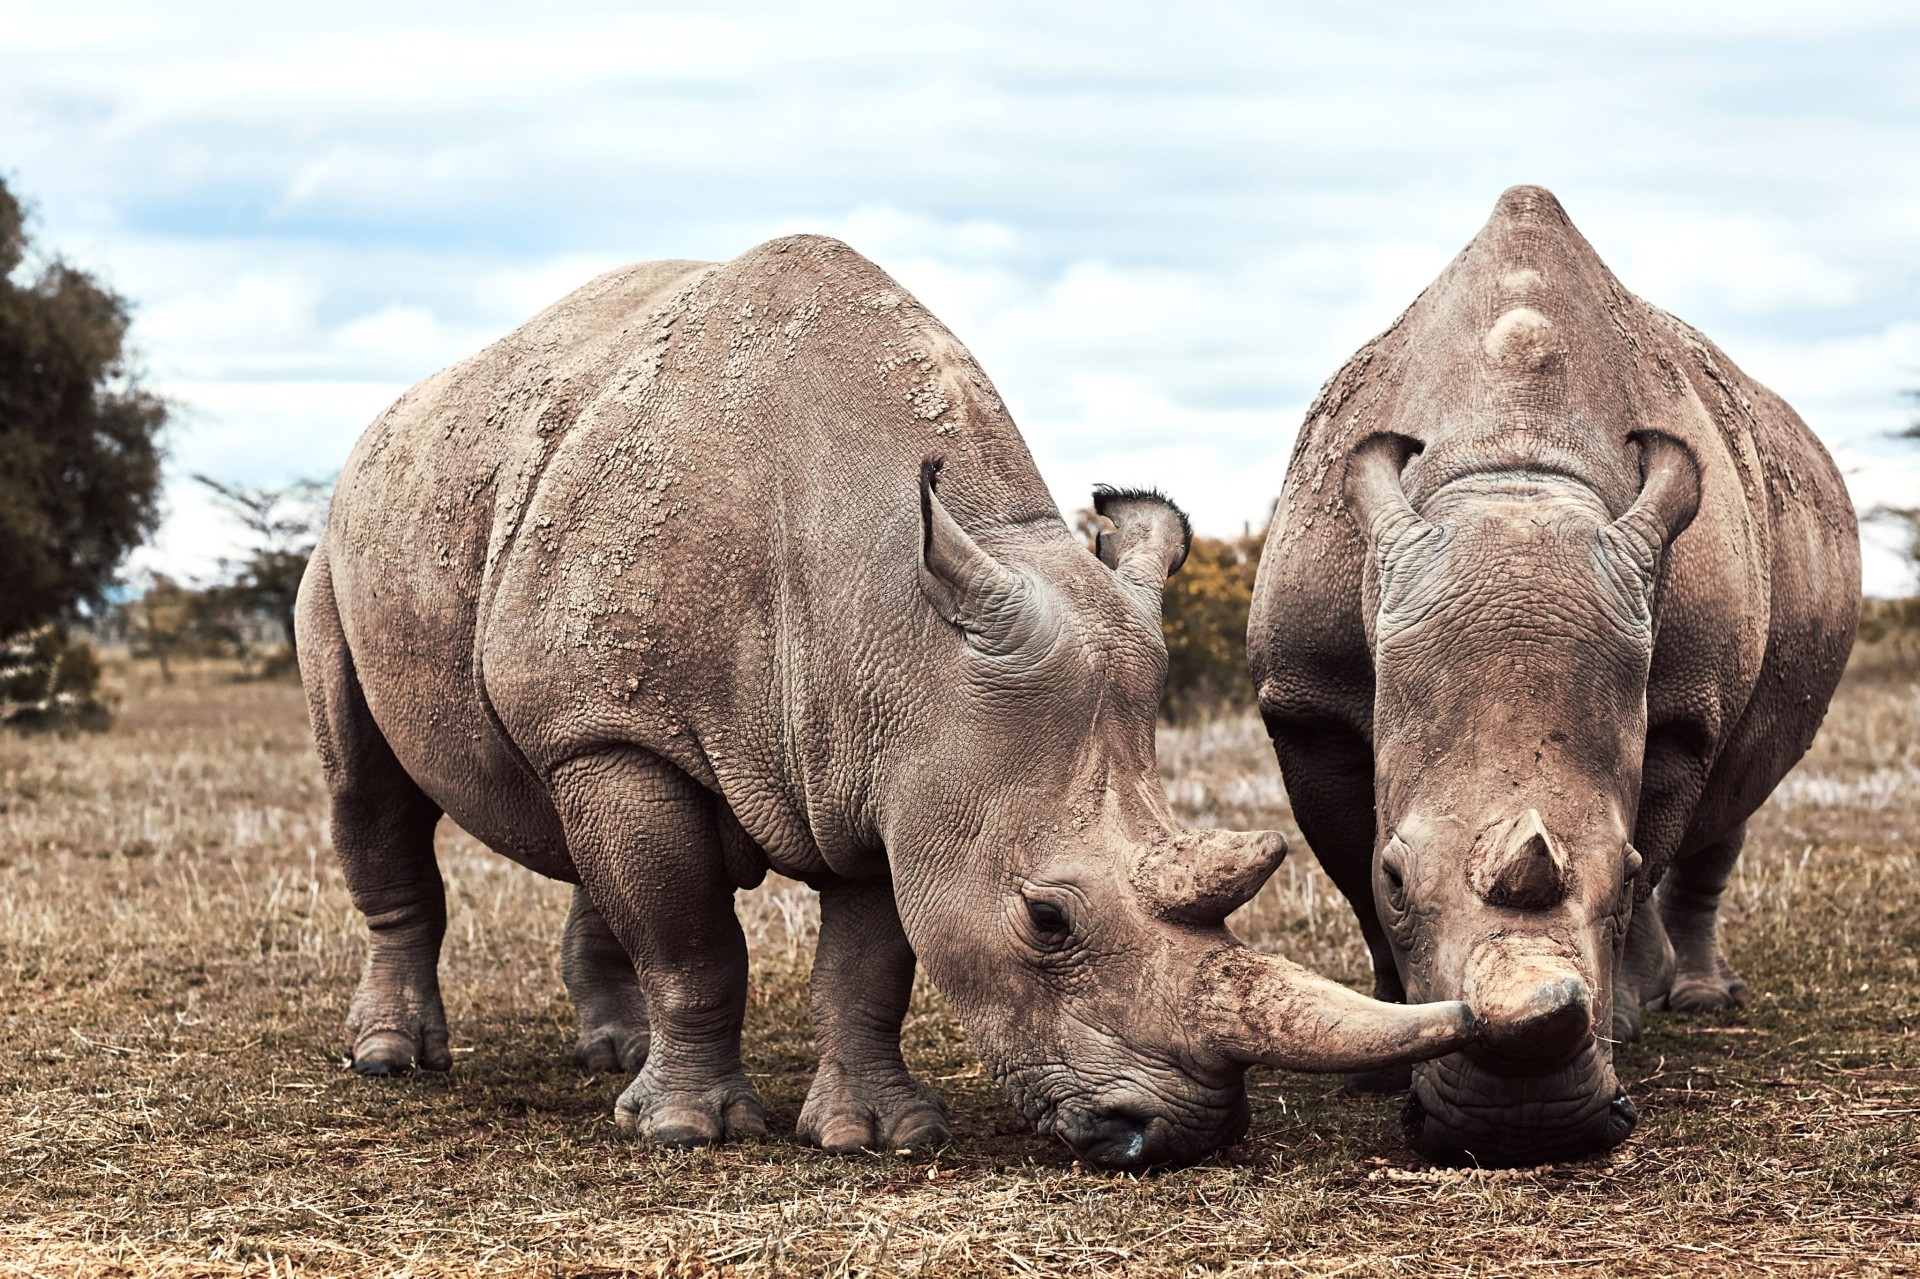 Northern white rhinoceros are on the very brink of extinction. Today just two females are left alive on the planet living at the Ol Pejeta Conservancy, Kenya. Photos BBC Earth